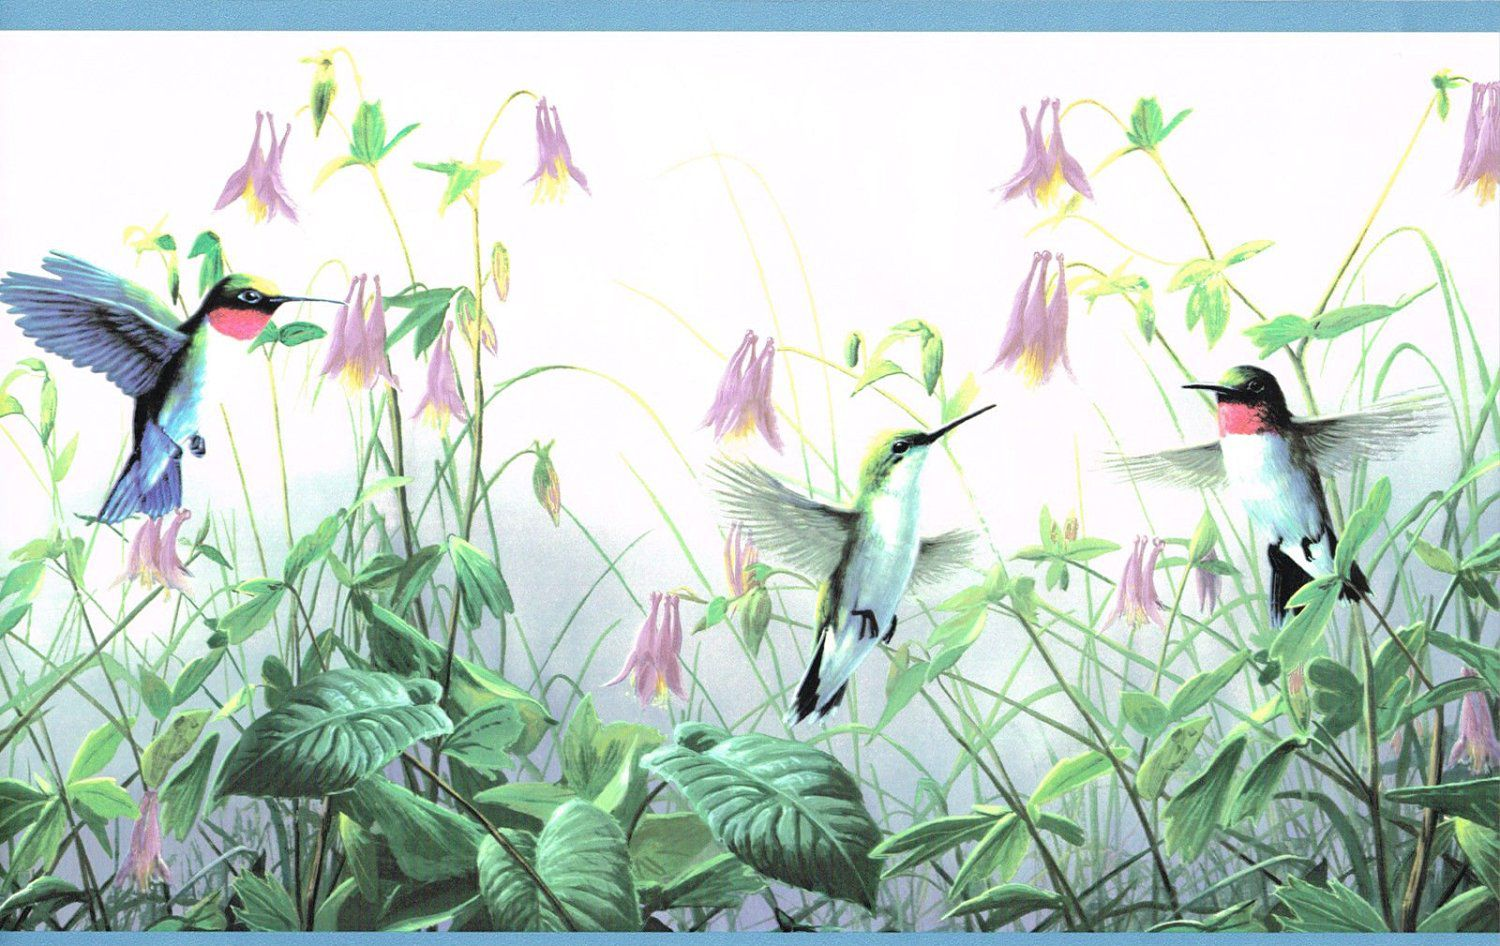 Wallpaper Border Floral Hummingbirds with Blue Edge By James Hautman Brothers